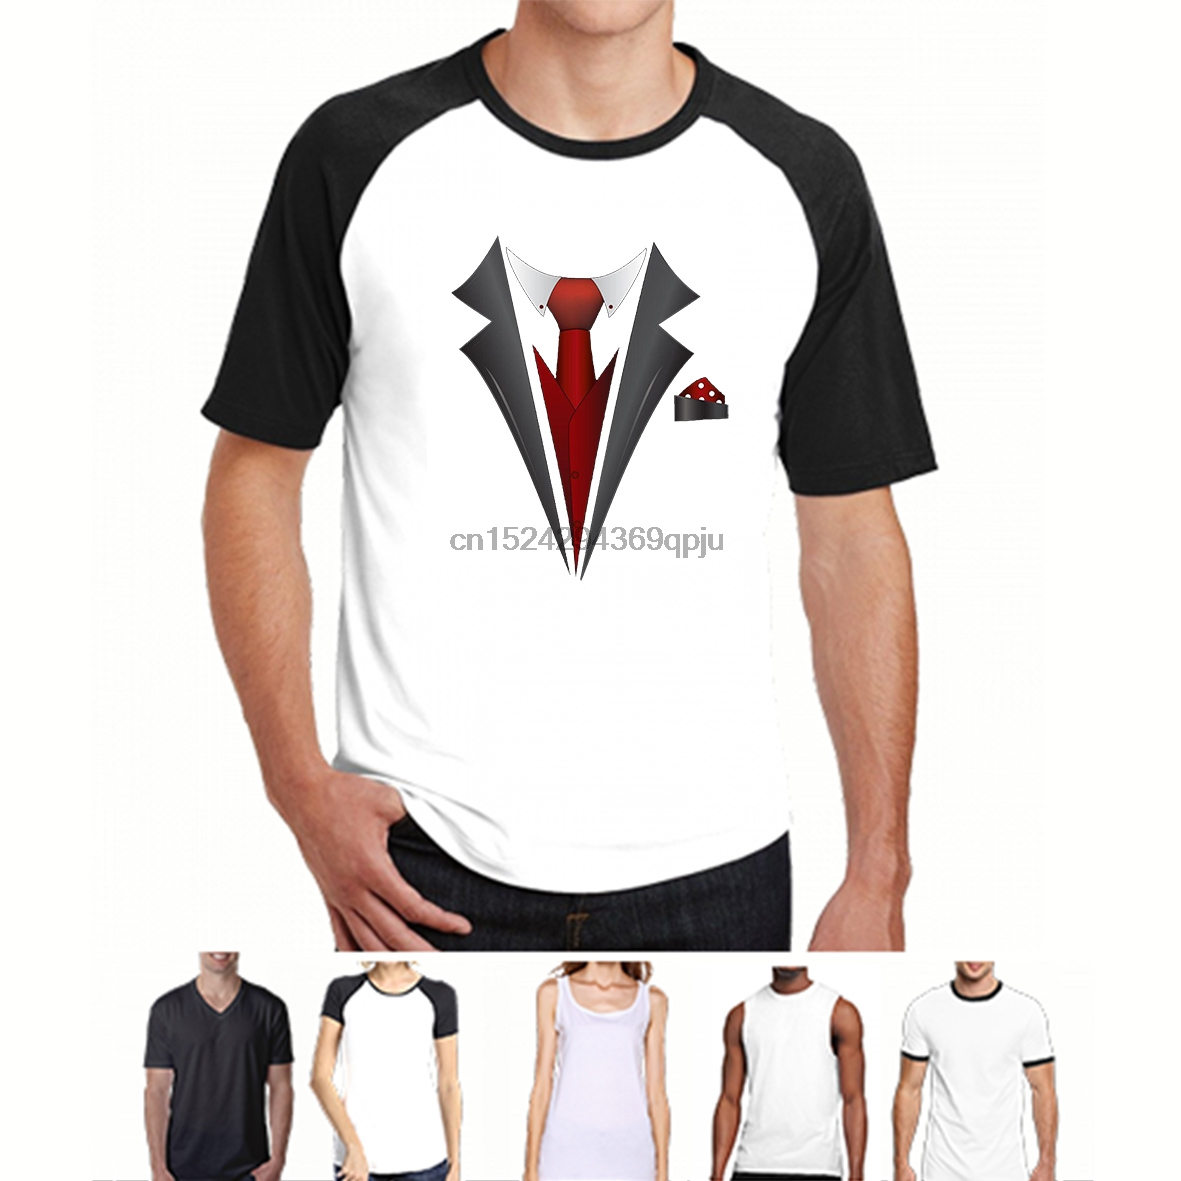 US $12 99 |Tuxedo Fancy Dress Stag Party Tux tee Mens Funny Wedding Prom  Beachelor Groom Gift Tops t shirt Shirts Black-in T-Shirts from Men's